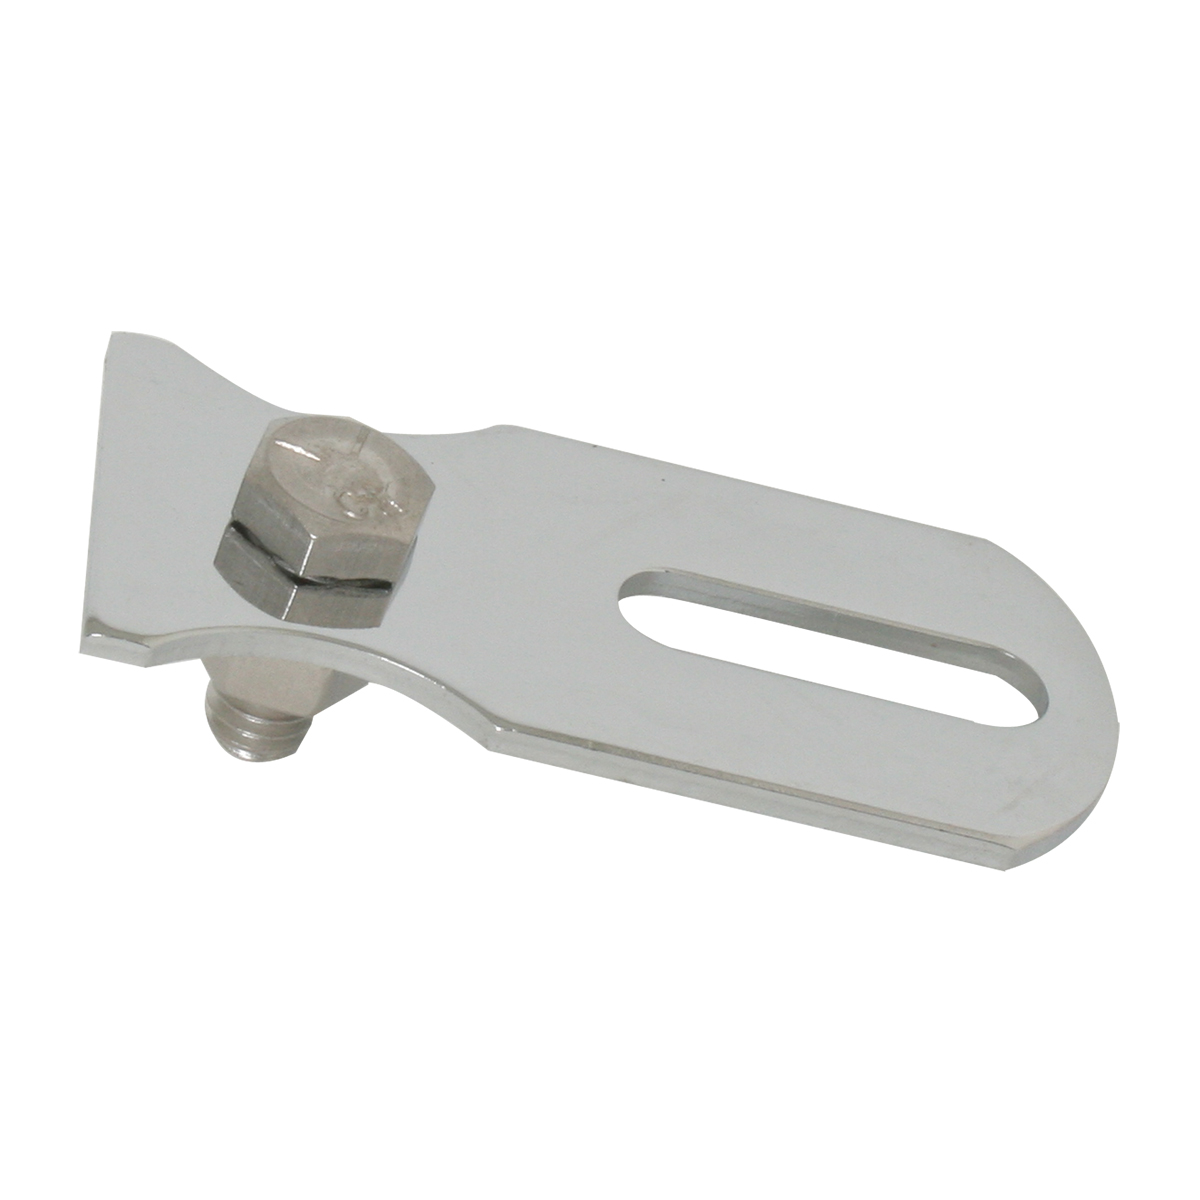 33162 Adapter Bracket for Mirror